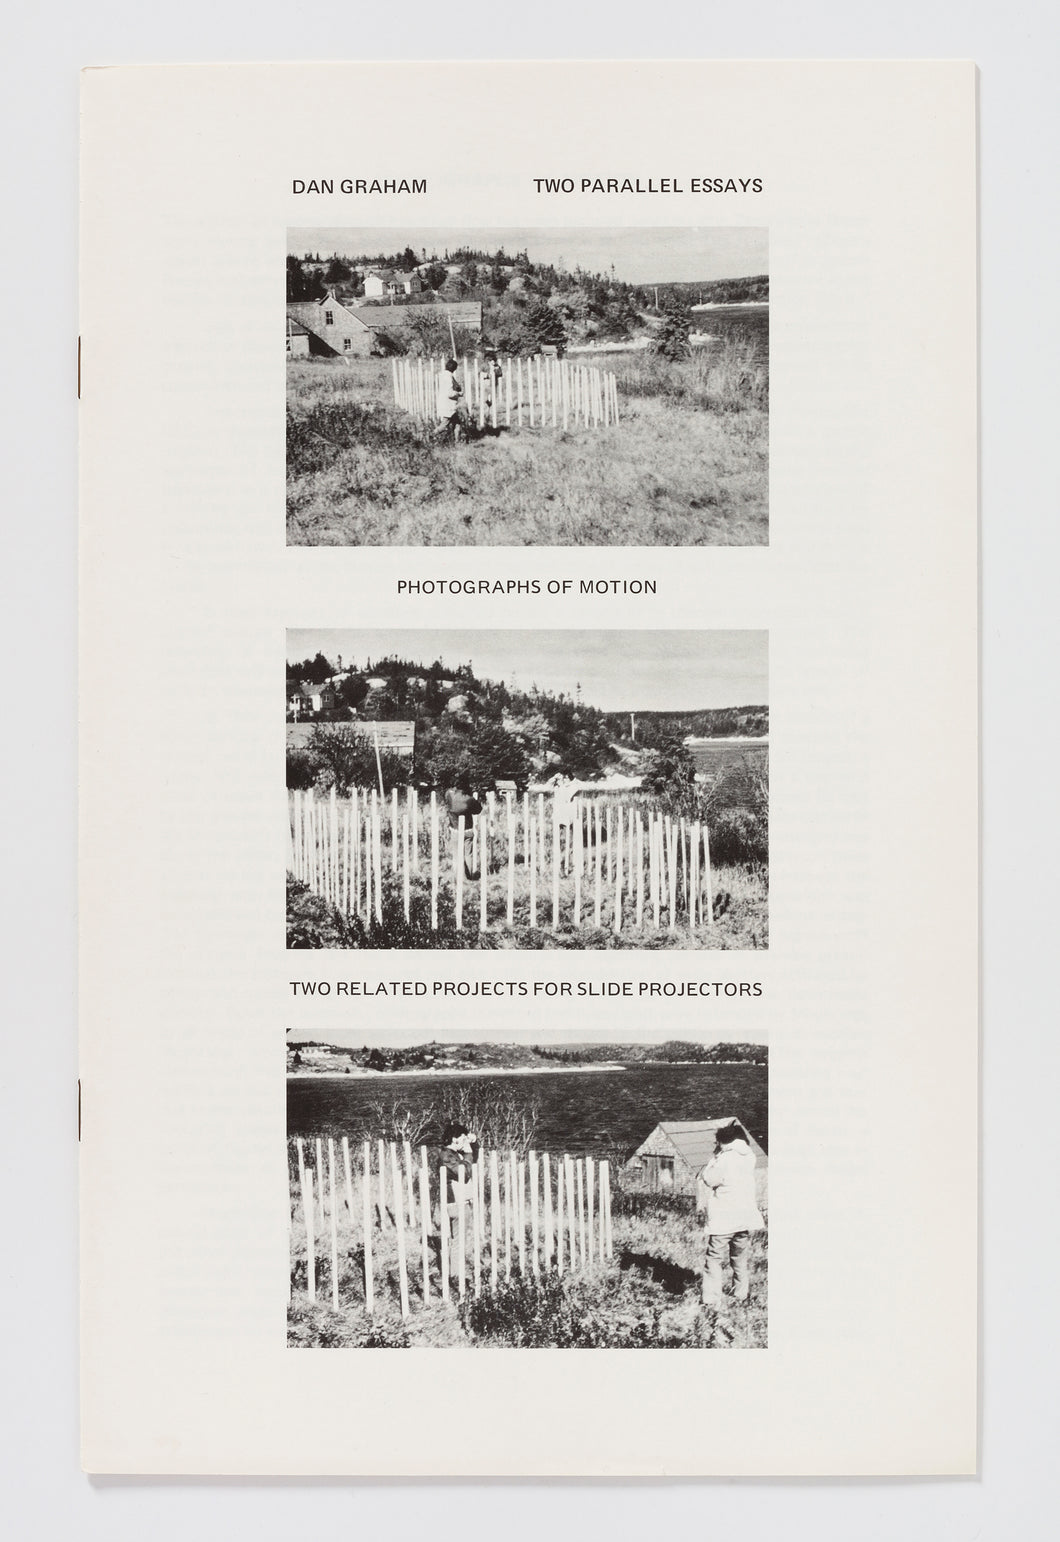 Dan Graham: Two Parallel Essays: Photographs of Motion / Two Related Projects for Slide Projectors